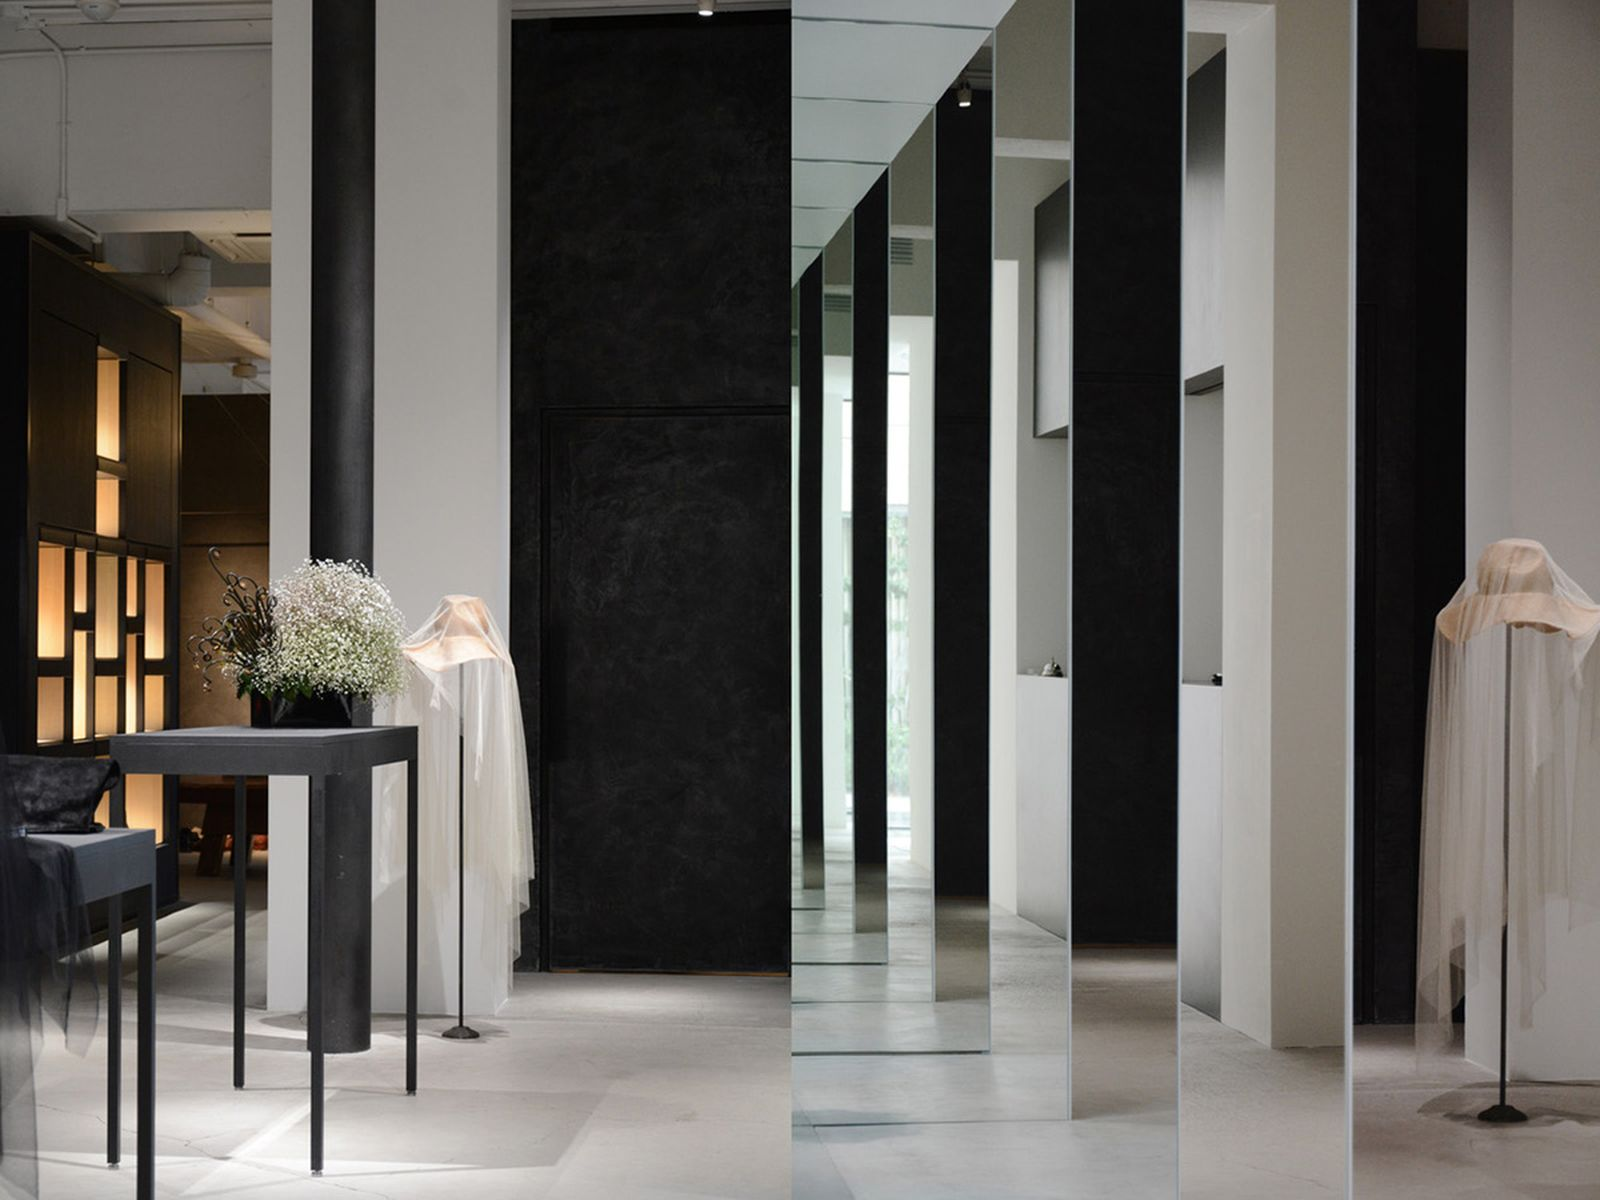 game-changers-best-store-interiors-changed-fashion-life-etage-03